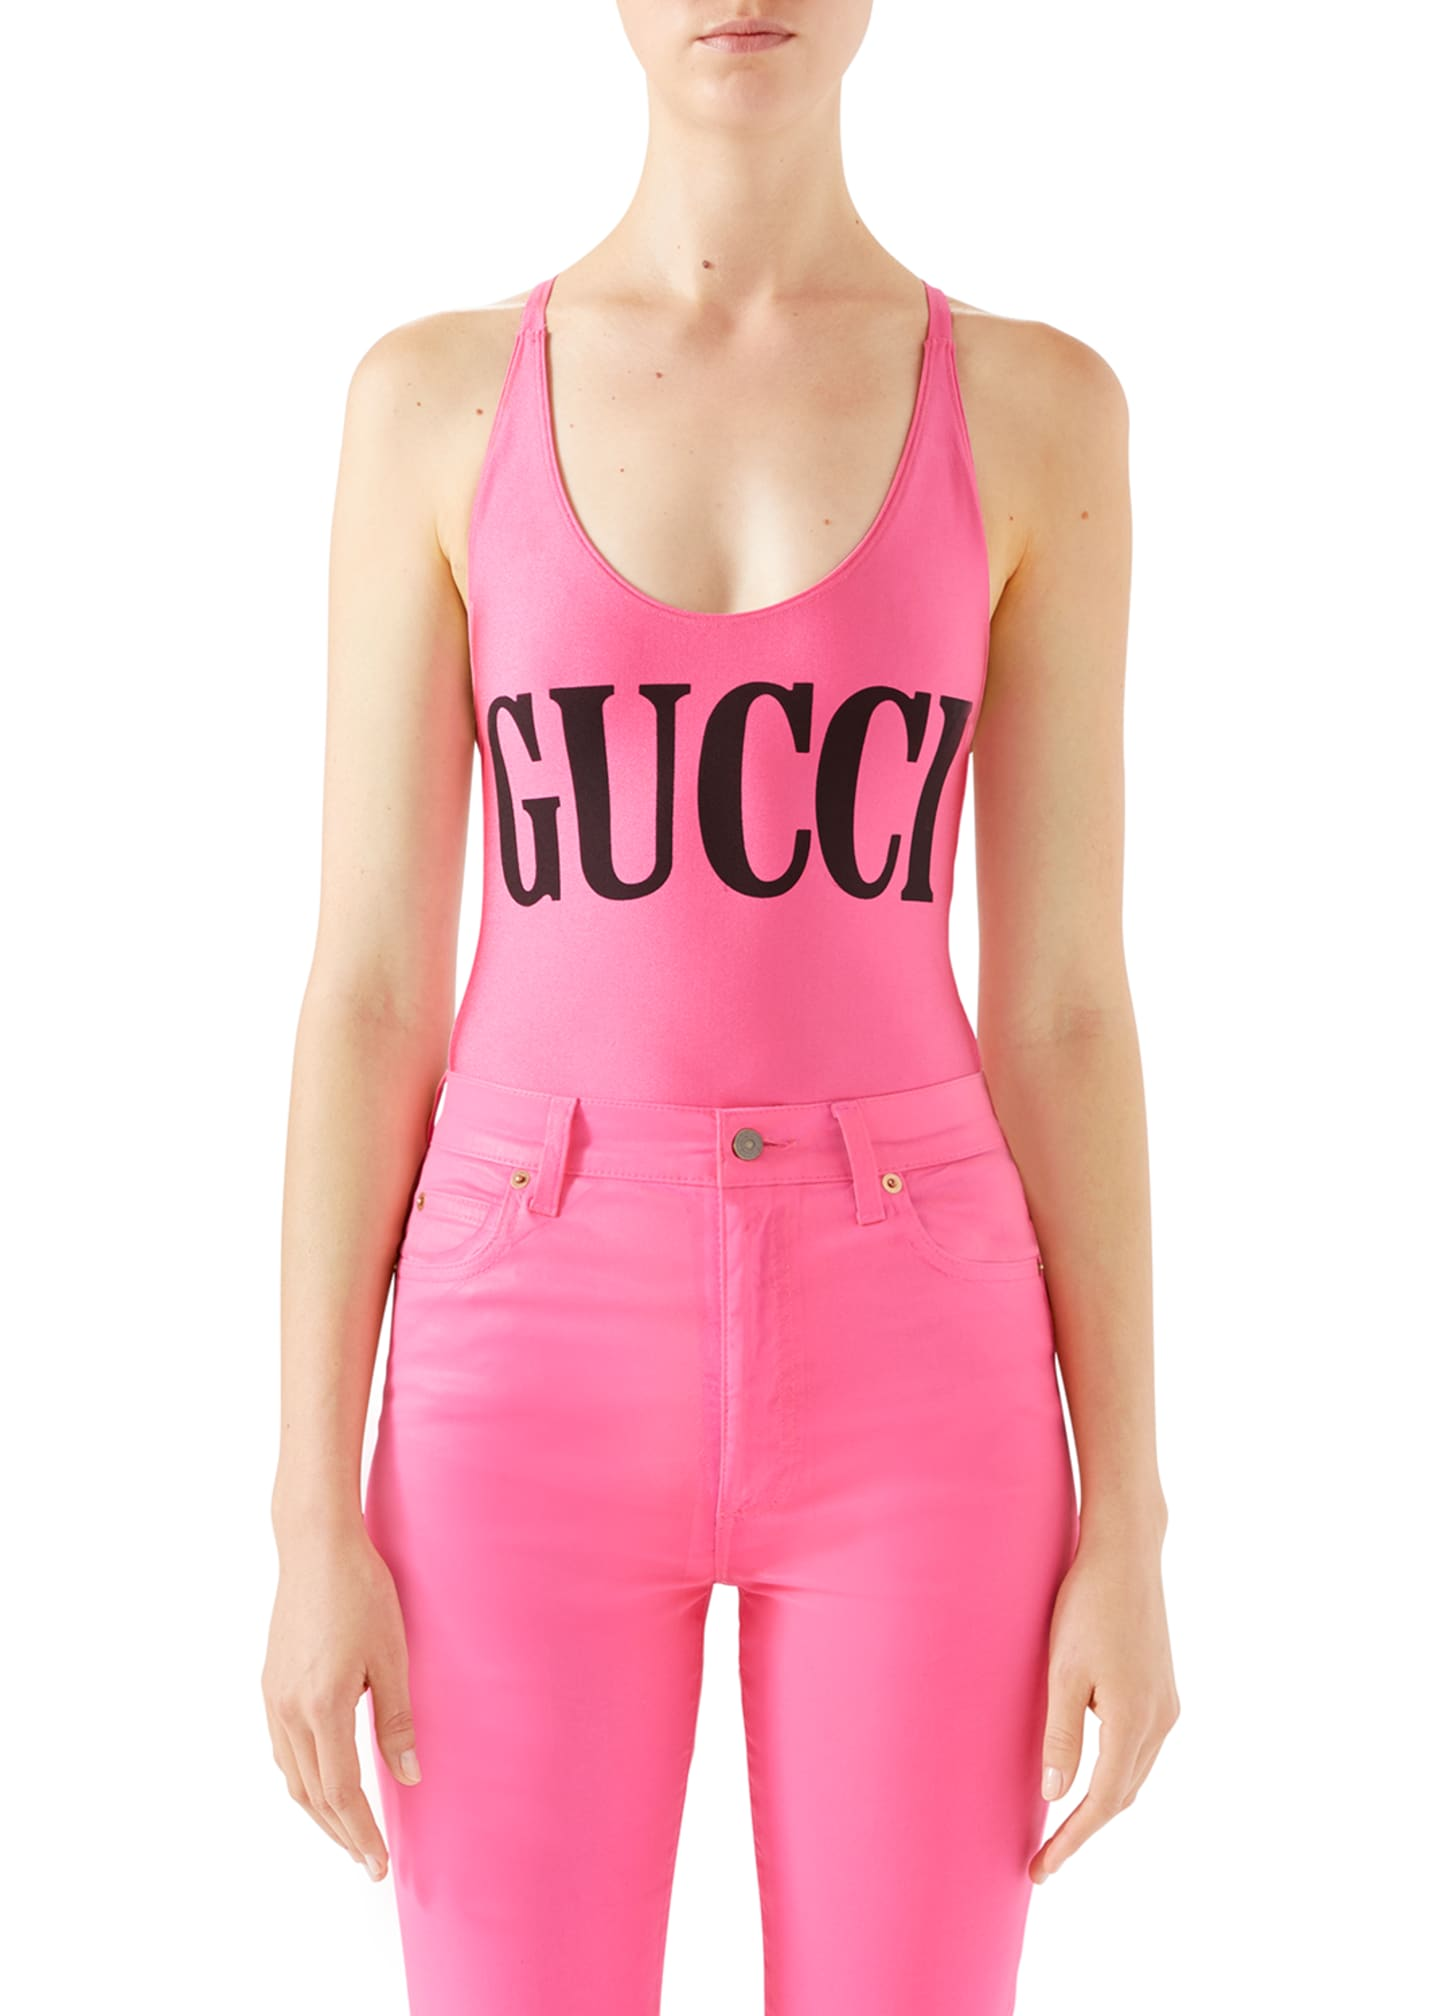 Gucci Shimmer Logo One-Piece Swimsuit